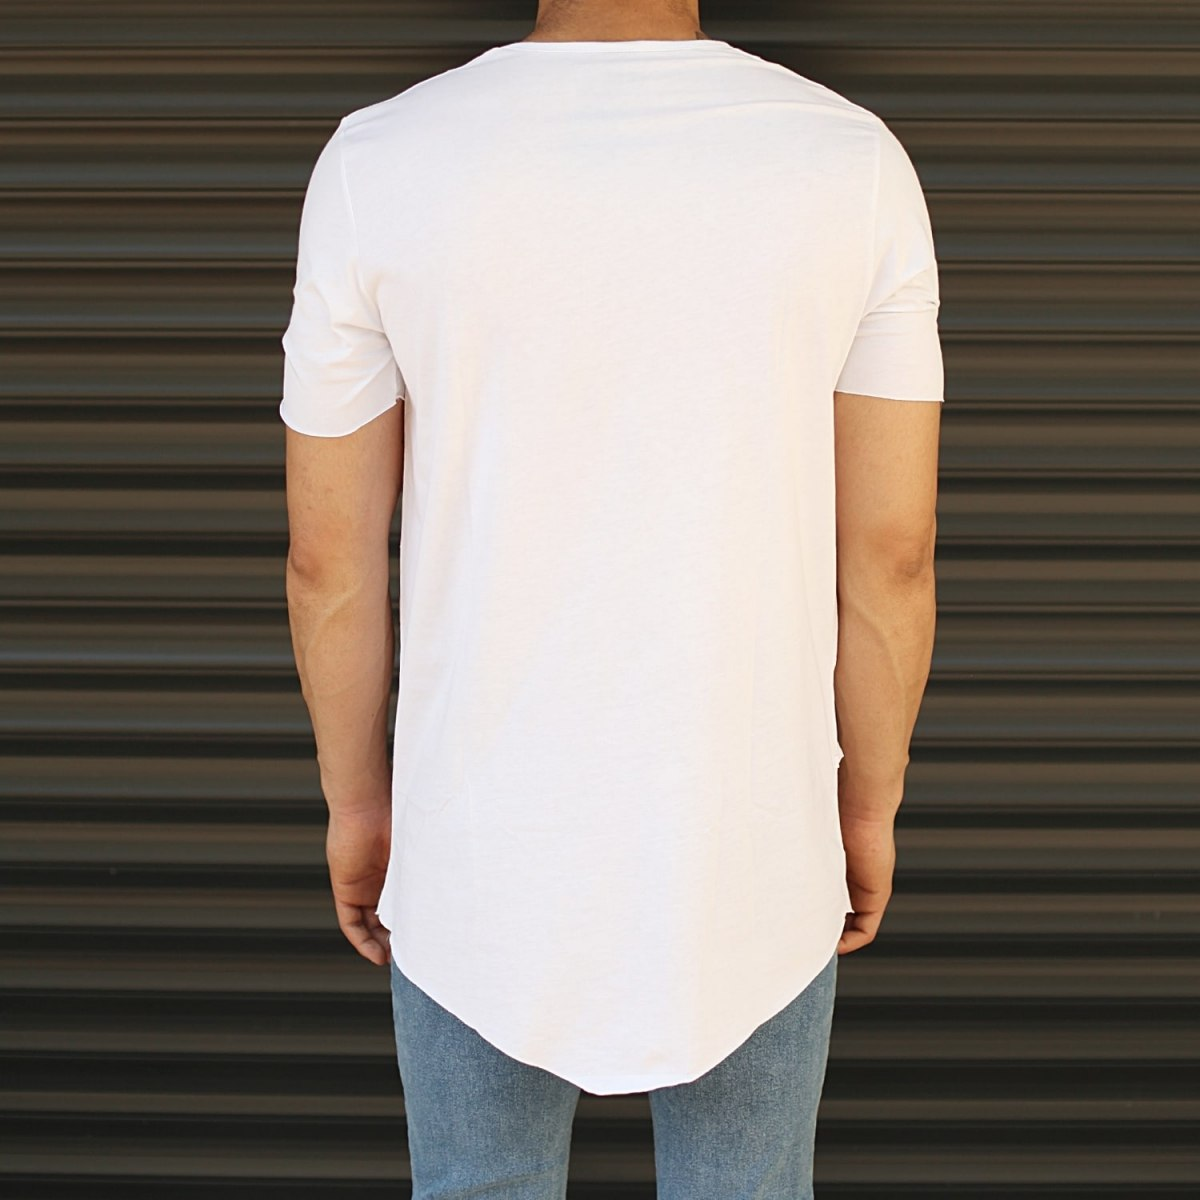 Men's Fitted Cross Zipper Tall T-Shirt White Mv Premium Brand - 2